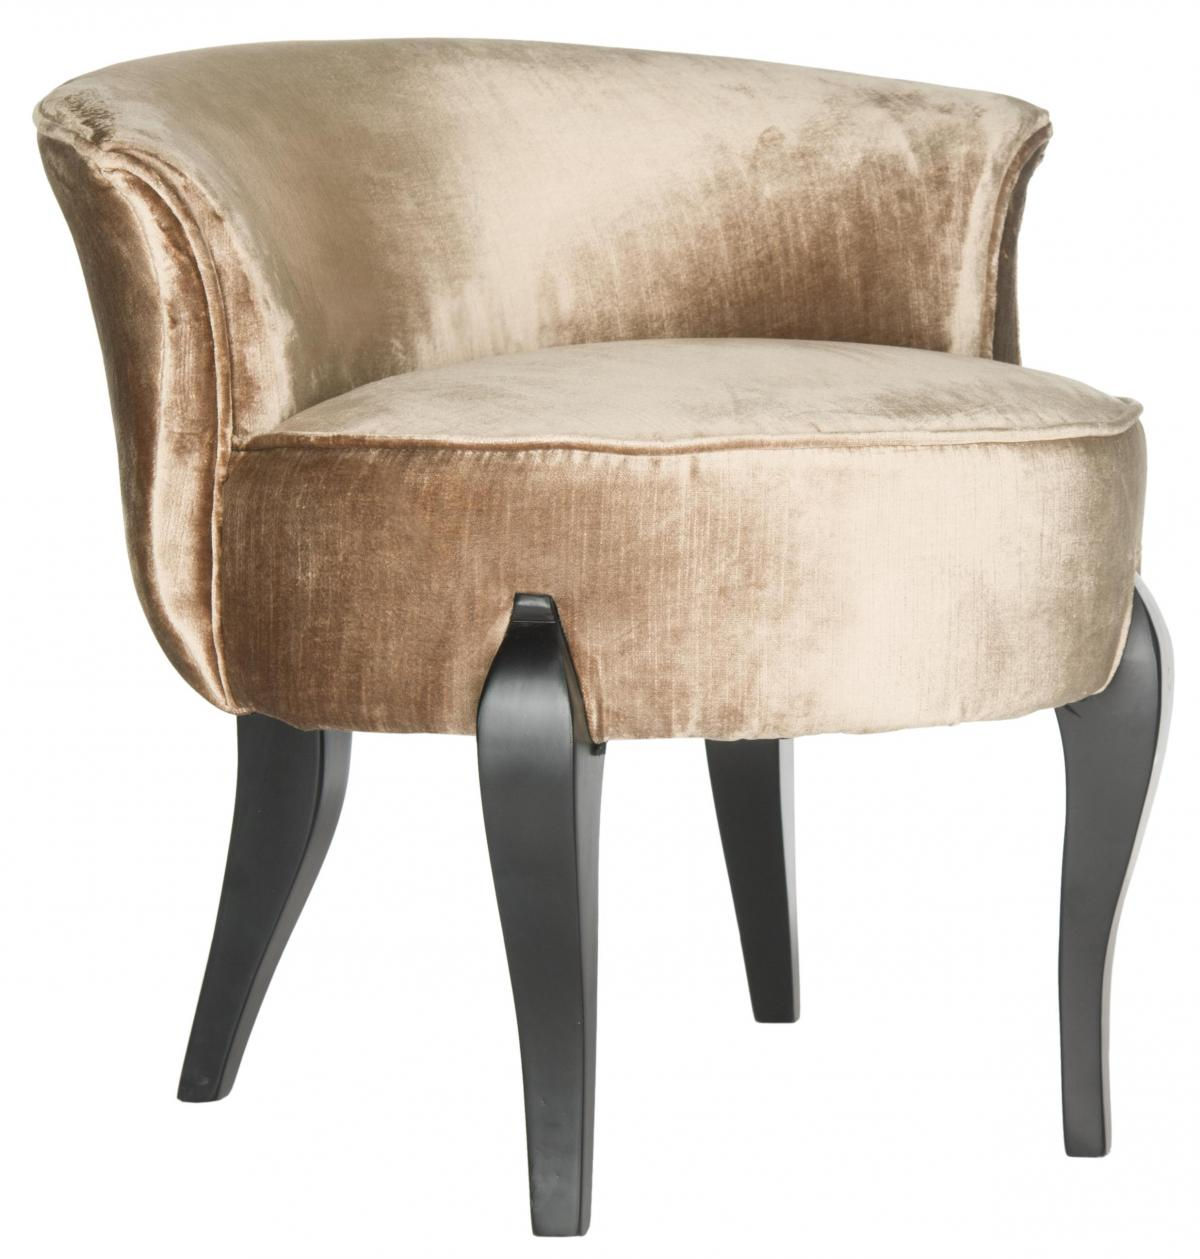 Safavieh - MCR4692C MORA VANITY CHAIR - MINK BROWN